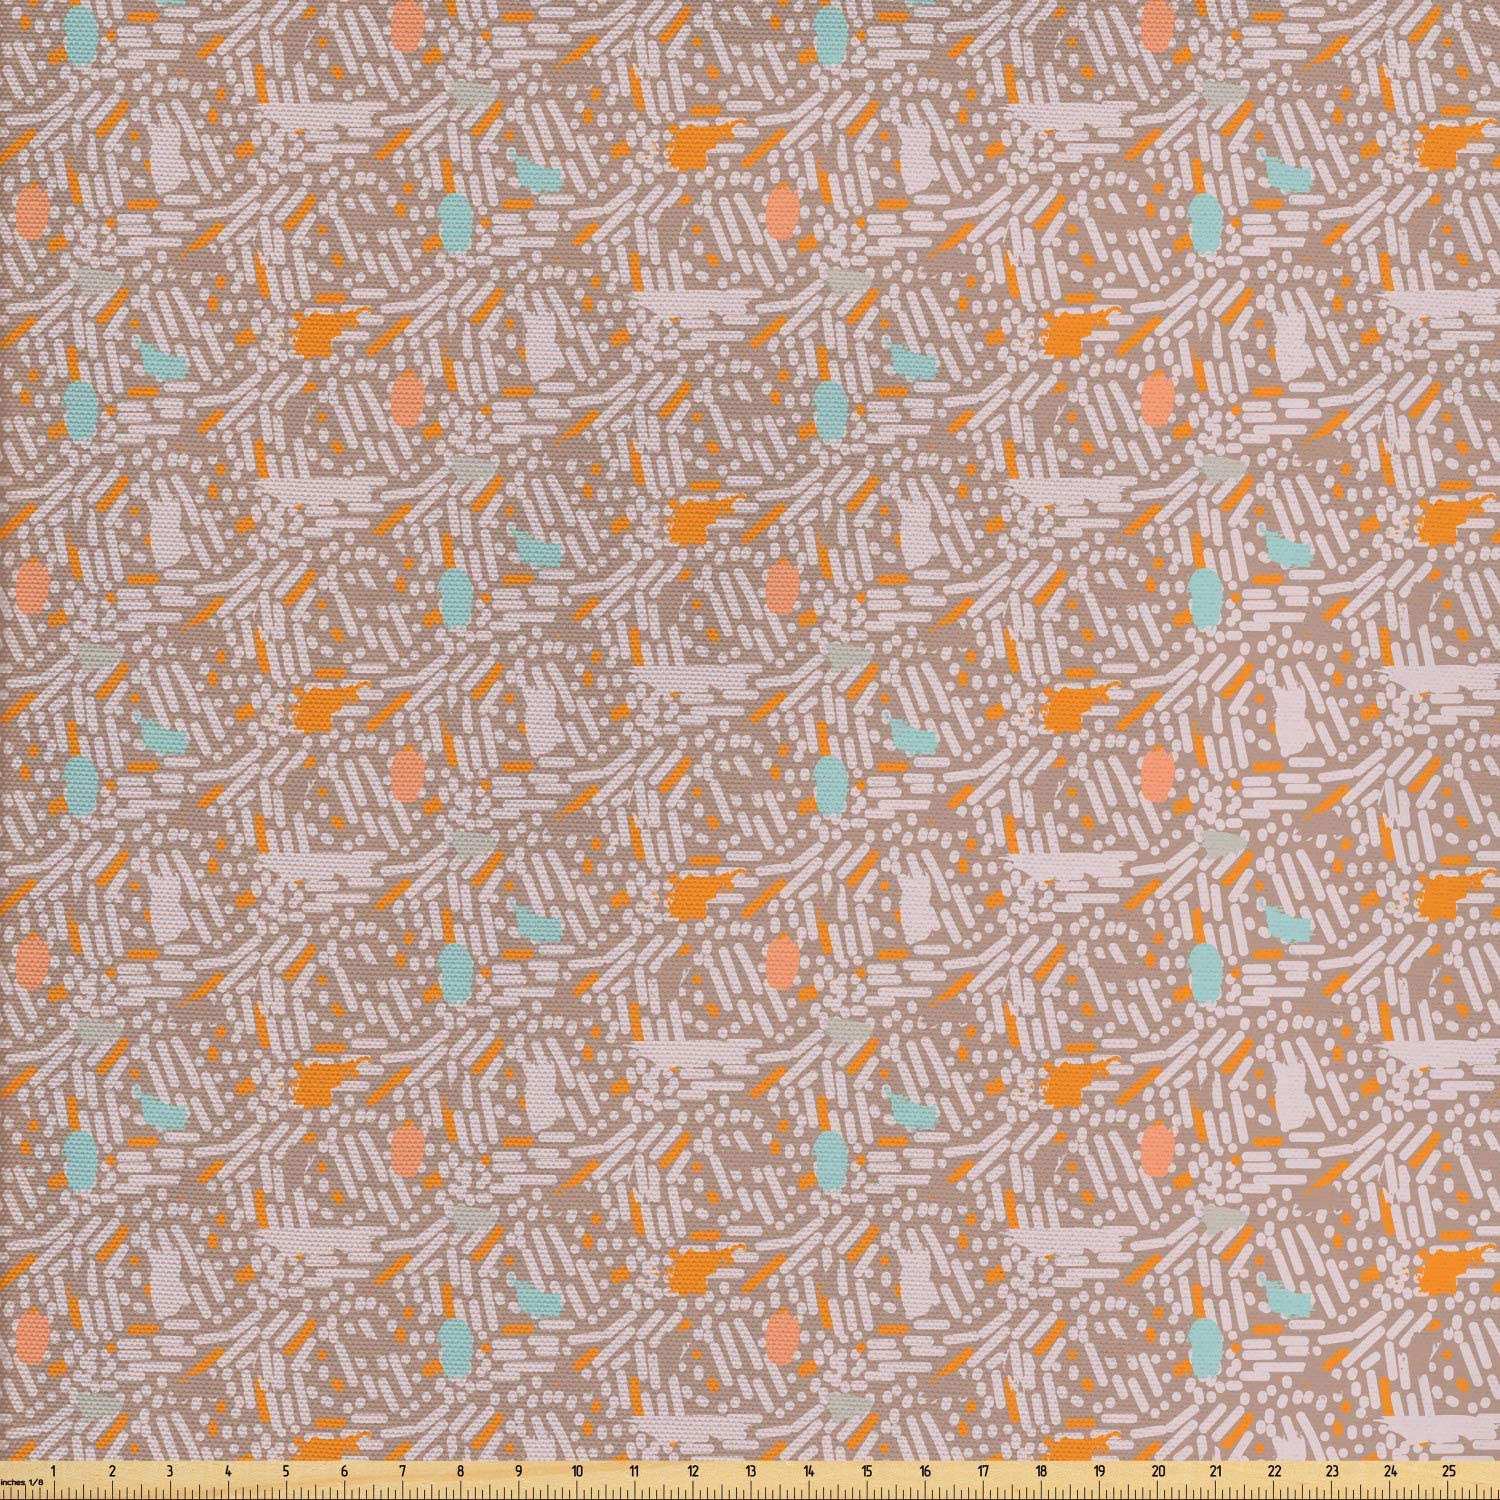 Ambesonne Abstract Fabric by The Yard, Randomly Arranged Paint Strokes and Blots in Mute Tones, Decorative Fabric for Upholstery and Home Accents, 1 Yard, Pale Rose Marigold